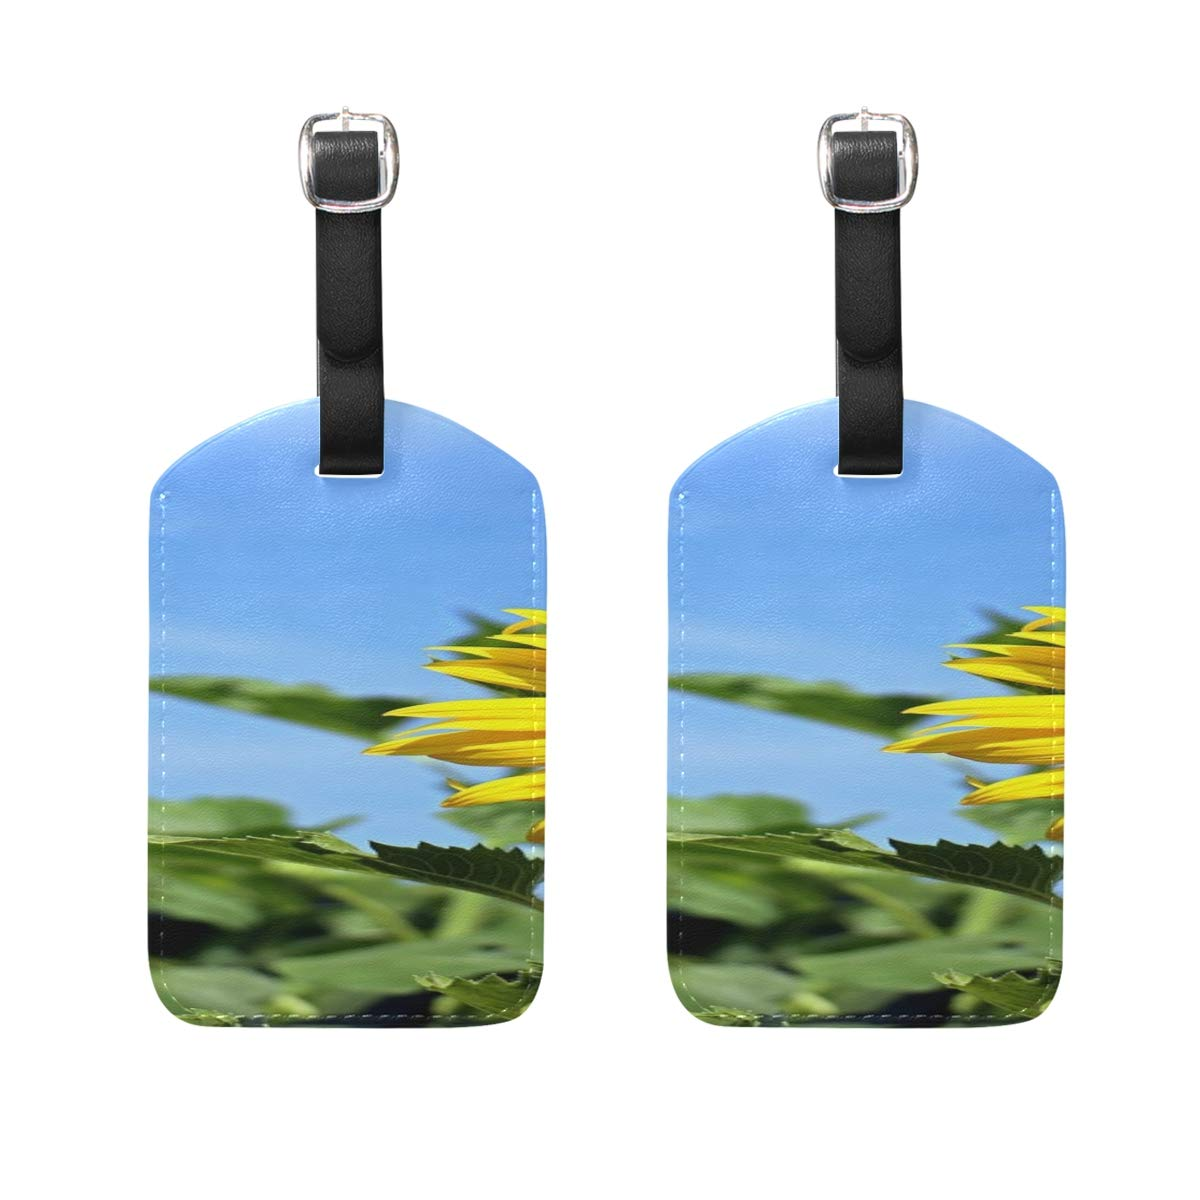 2 Pack Luggage Tags Kayak Fishing Silhouette Handbag Tag For Travel Tags Accessories